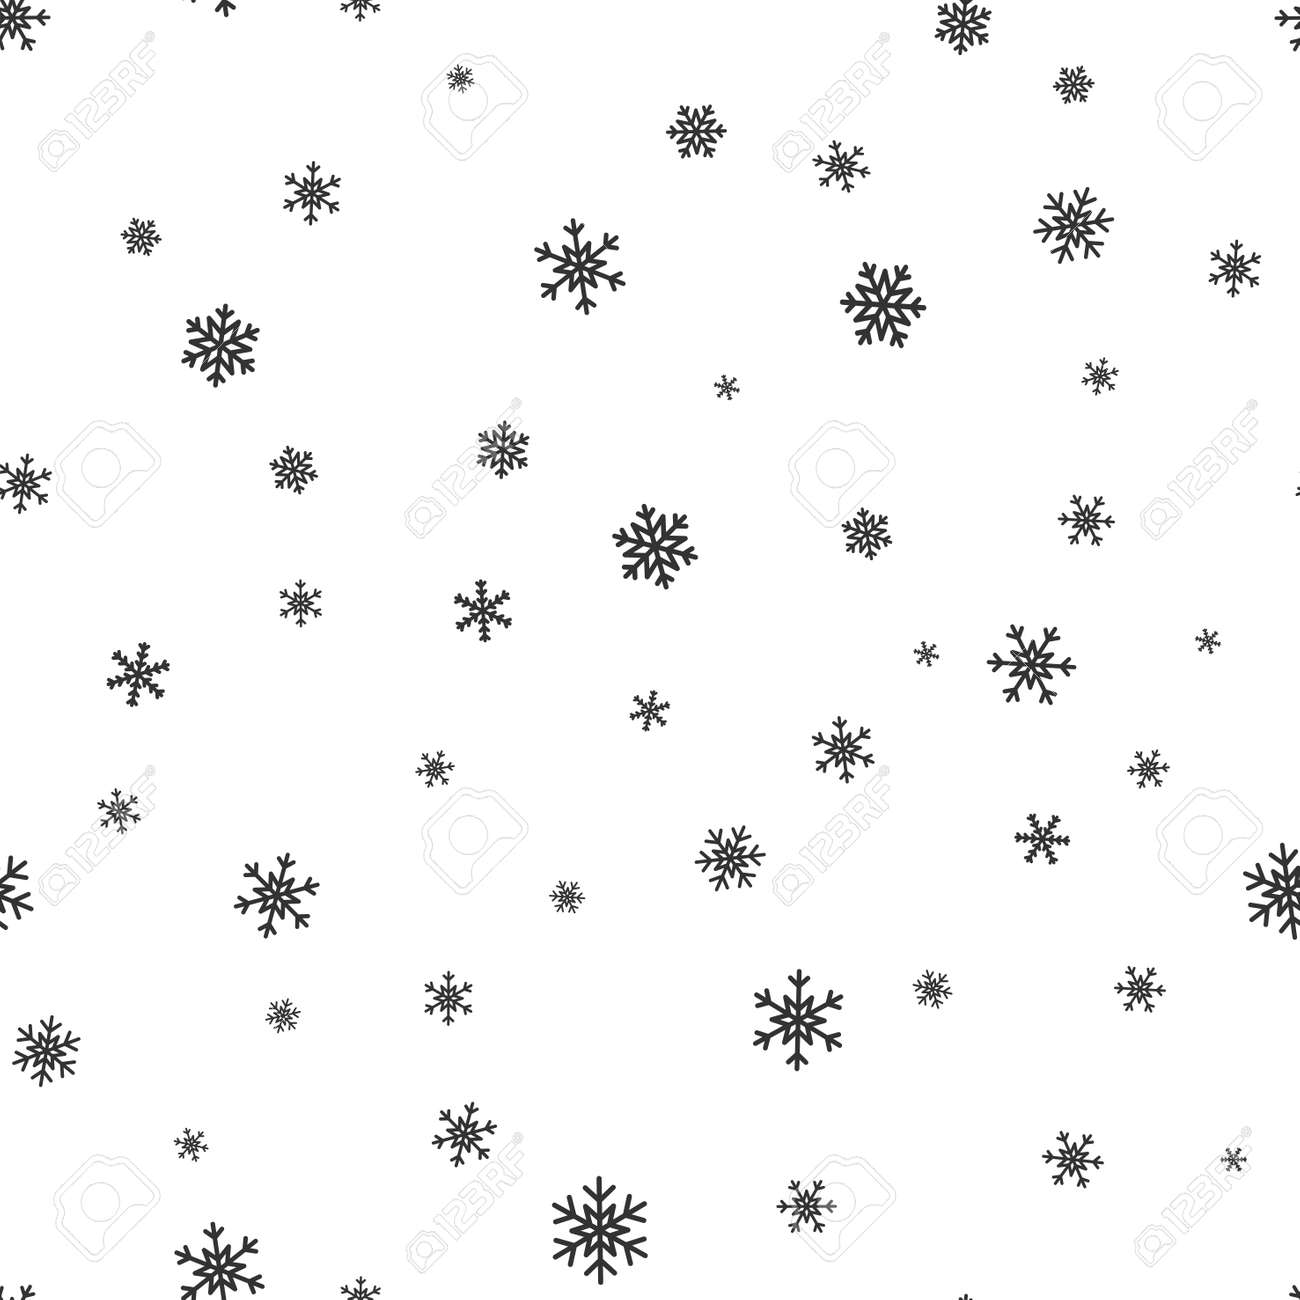 Snowflake Simple Seamless Pattern. Black Snow On White Background ... for Snow Background Clipart Black And White  35fsj